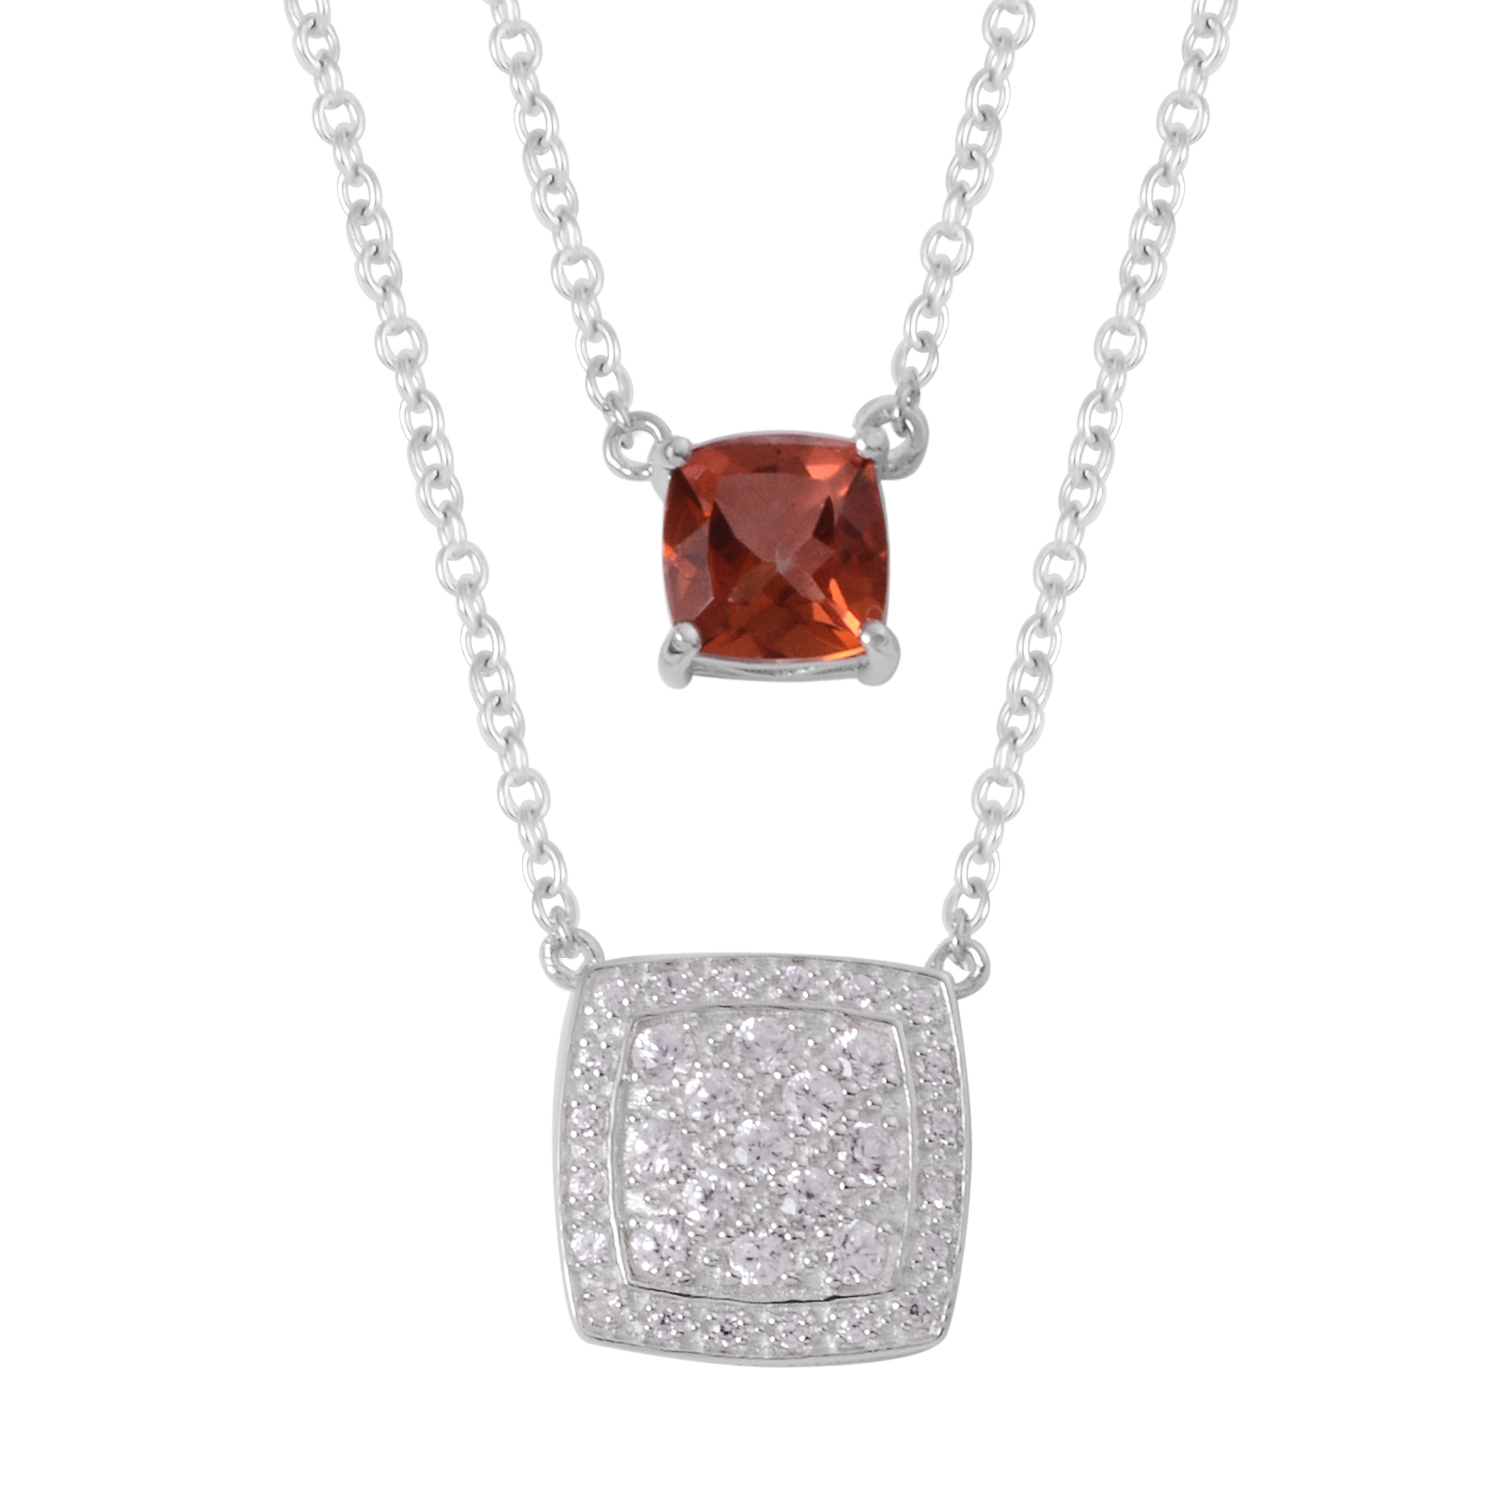 5 Colors 925 Silver Gemstone /& White Topaz Necklace